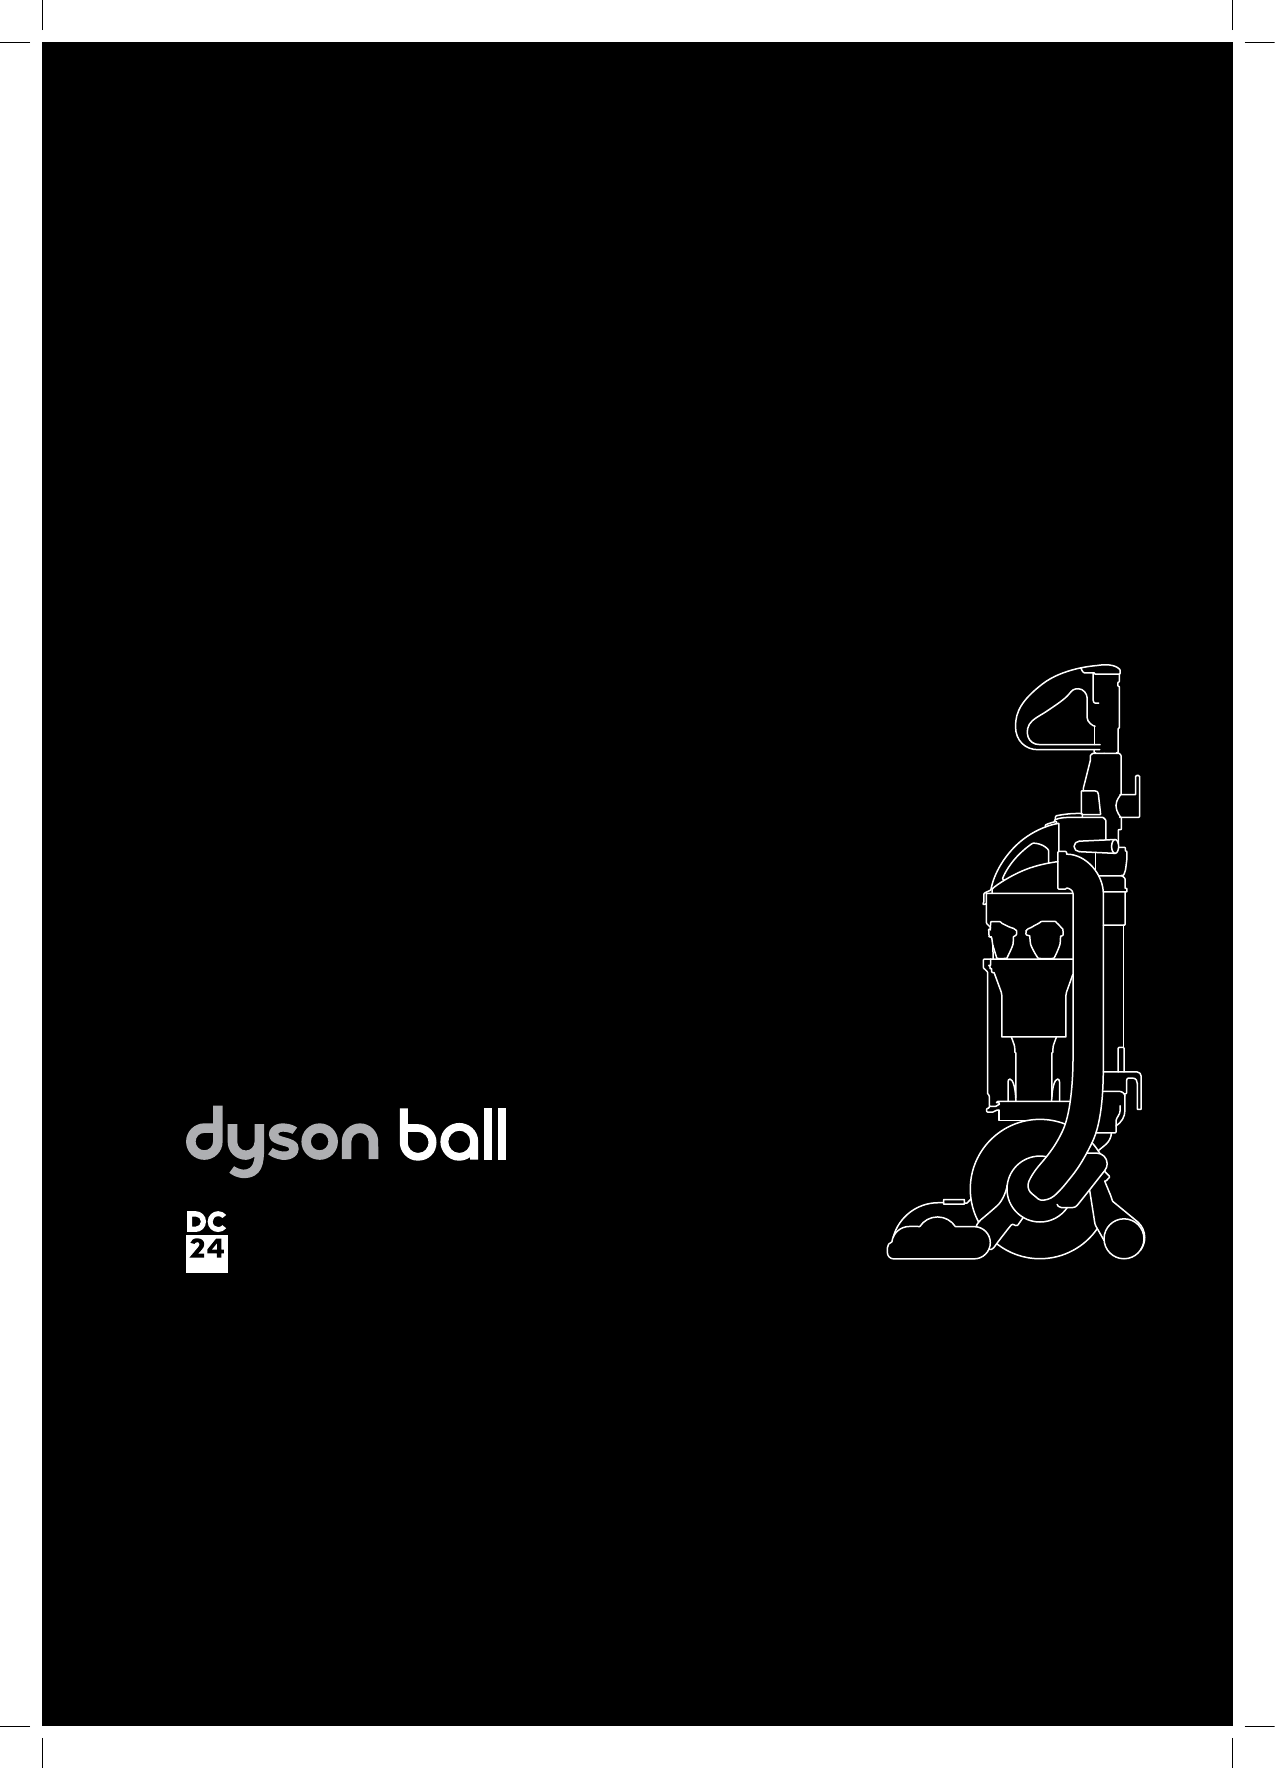 dyson vacuum cleaner dc24 user guide manualsonline com rh office manualsonline com dyson owners manual dc14 dyson owners manual dc14